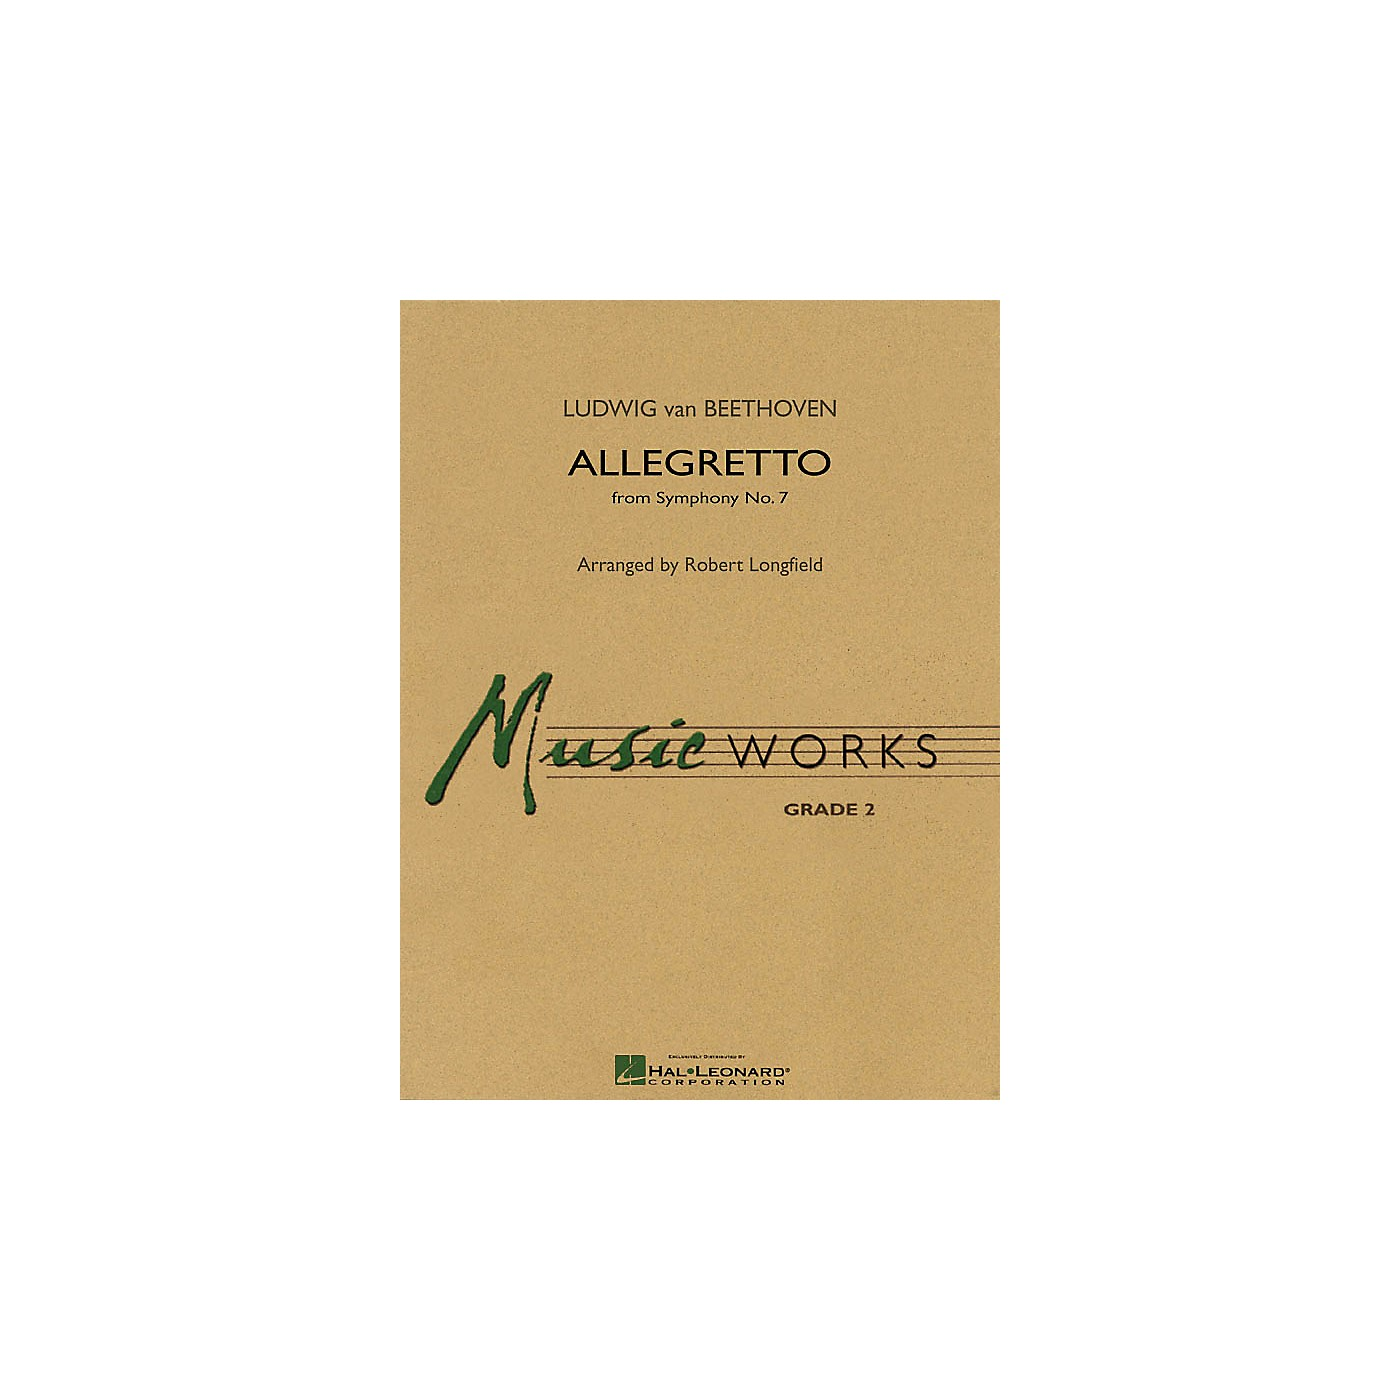 Hal Leonard Allegretto (from Symphony No. 7) Concert Band Level 2-2 1/2 Composed by Beethoven Arranged by Longfield thumbnail